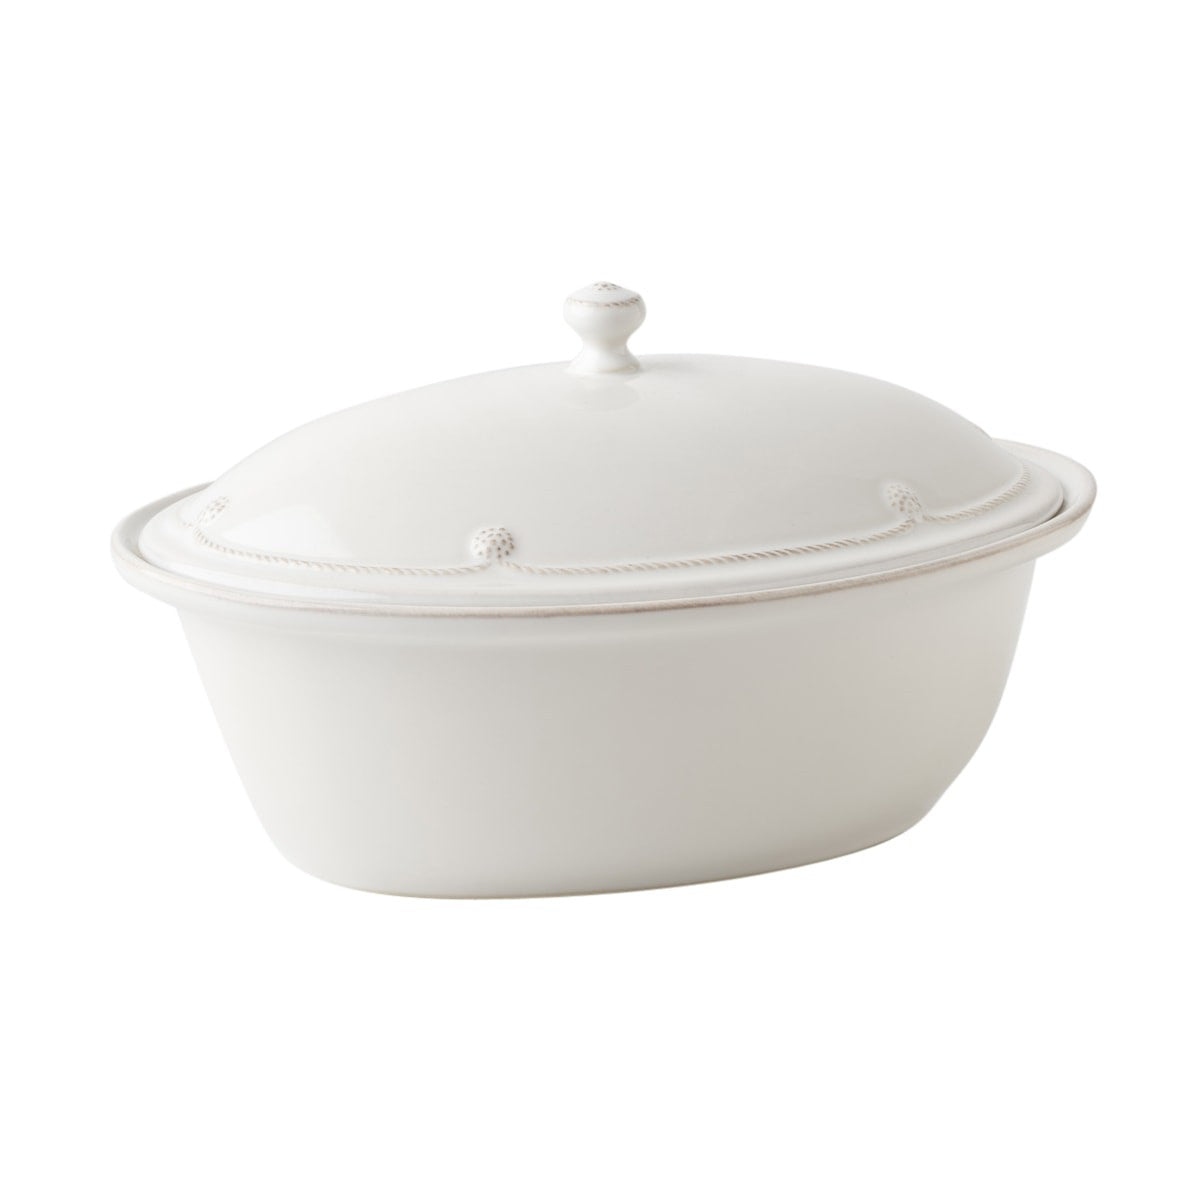 "Juliska - Berry & Thread Whitewash 13"" Covered Casserole"